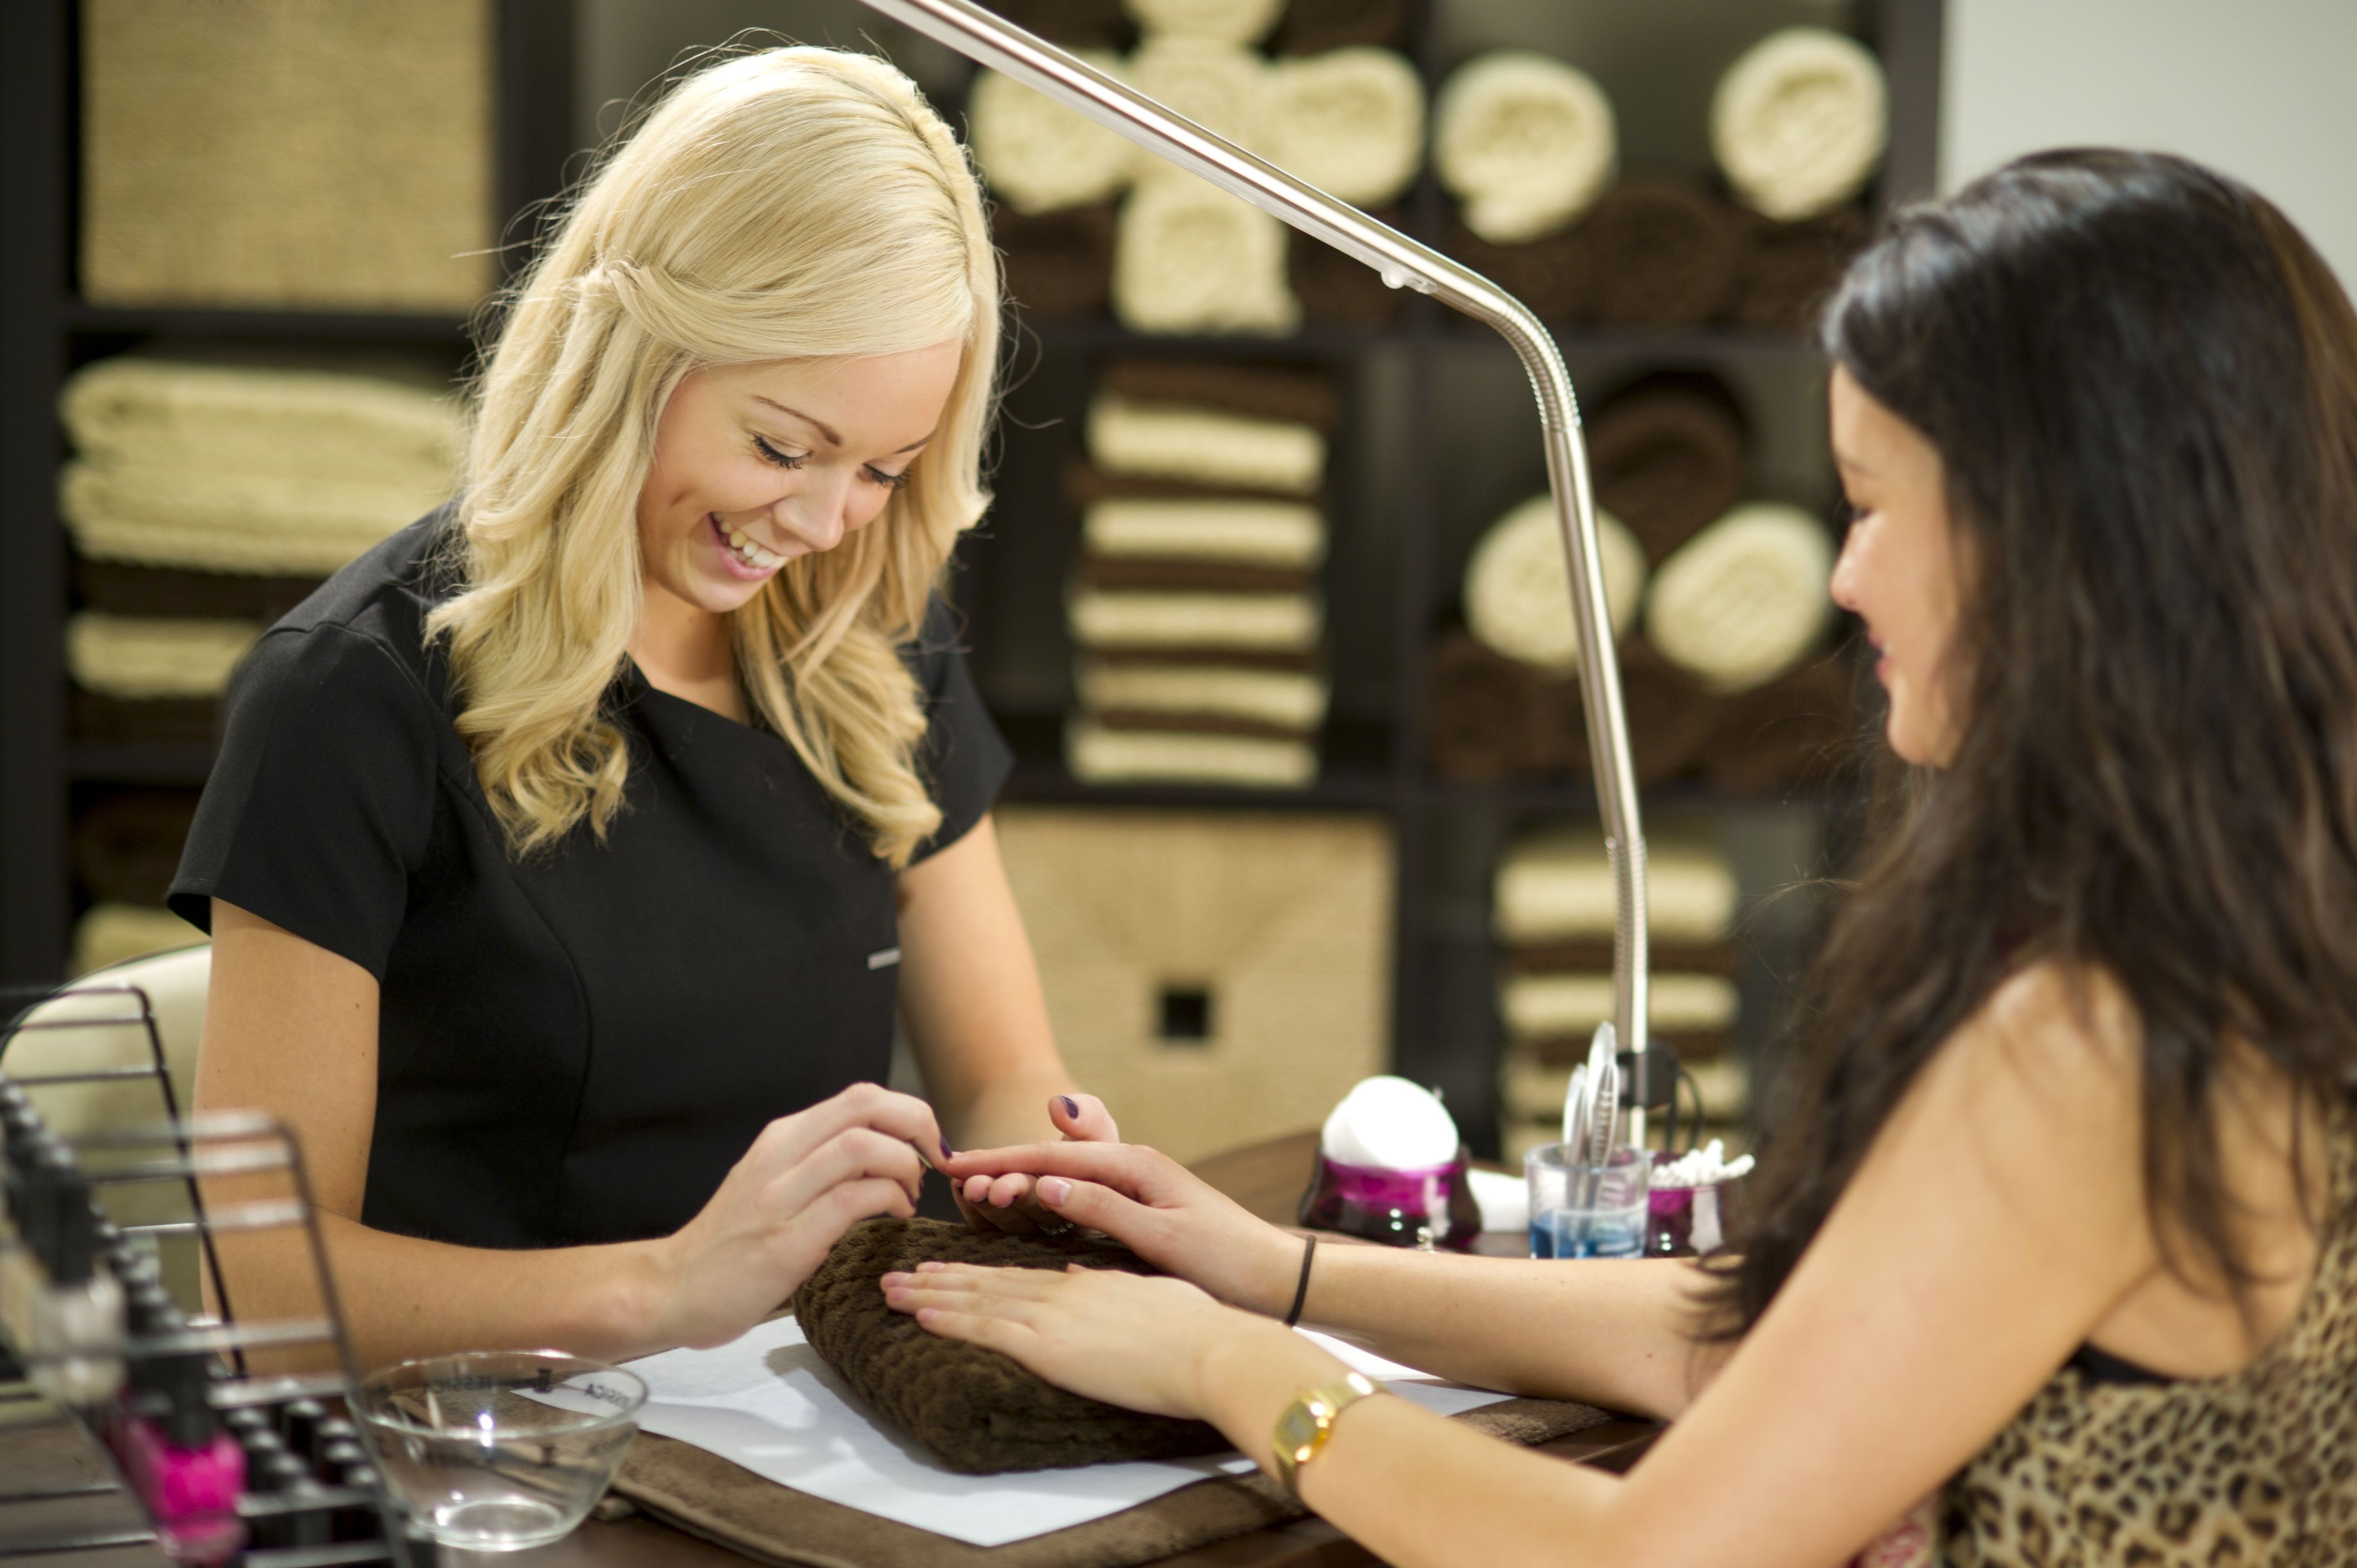 how much is it to get your nails done at a nail salon